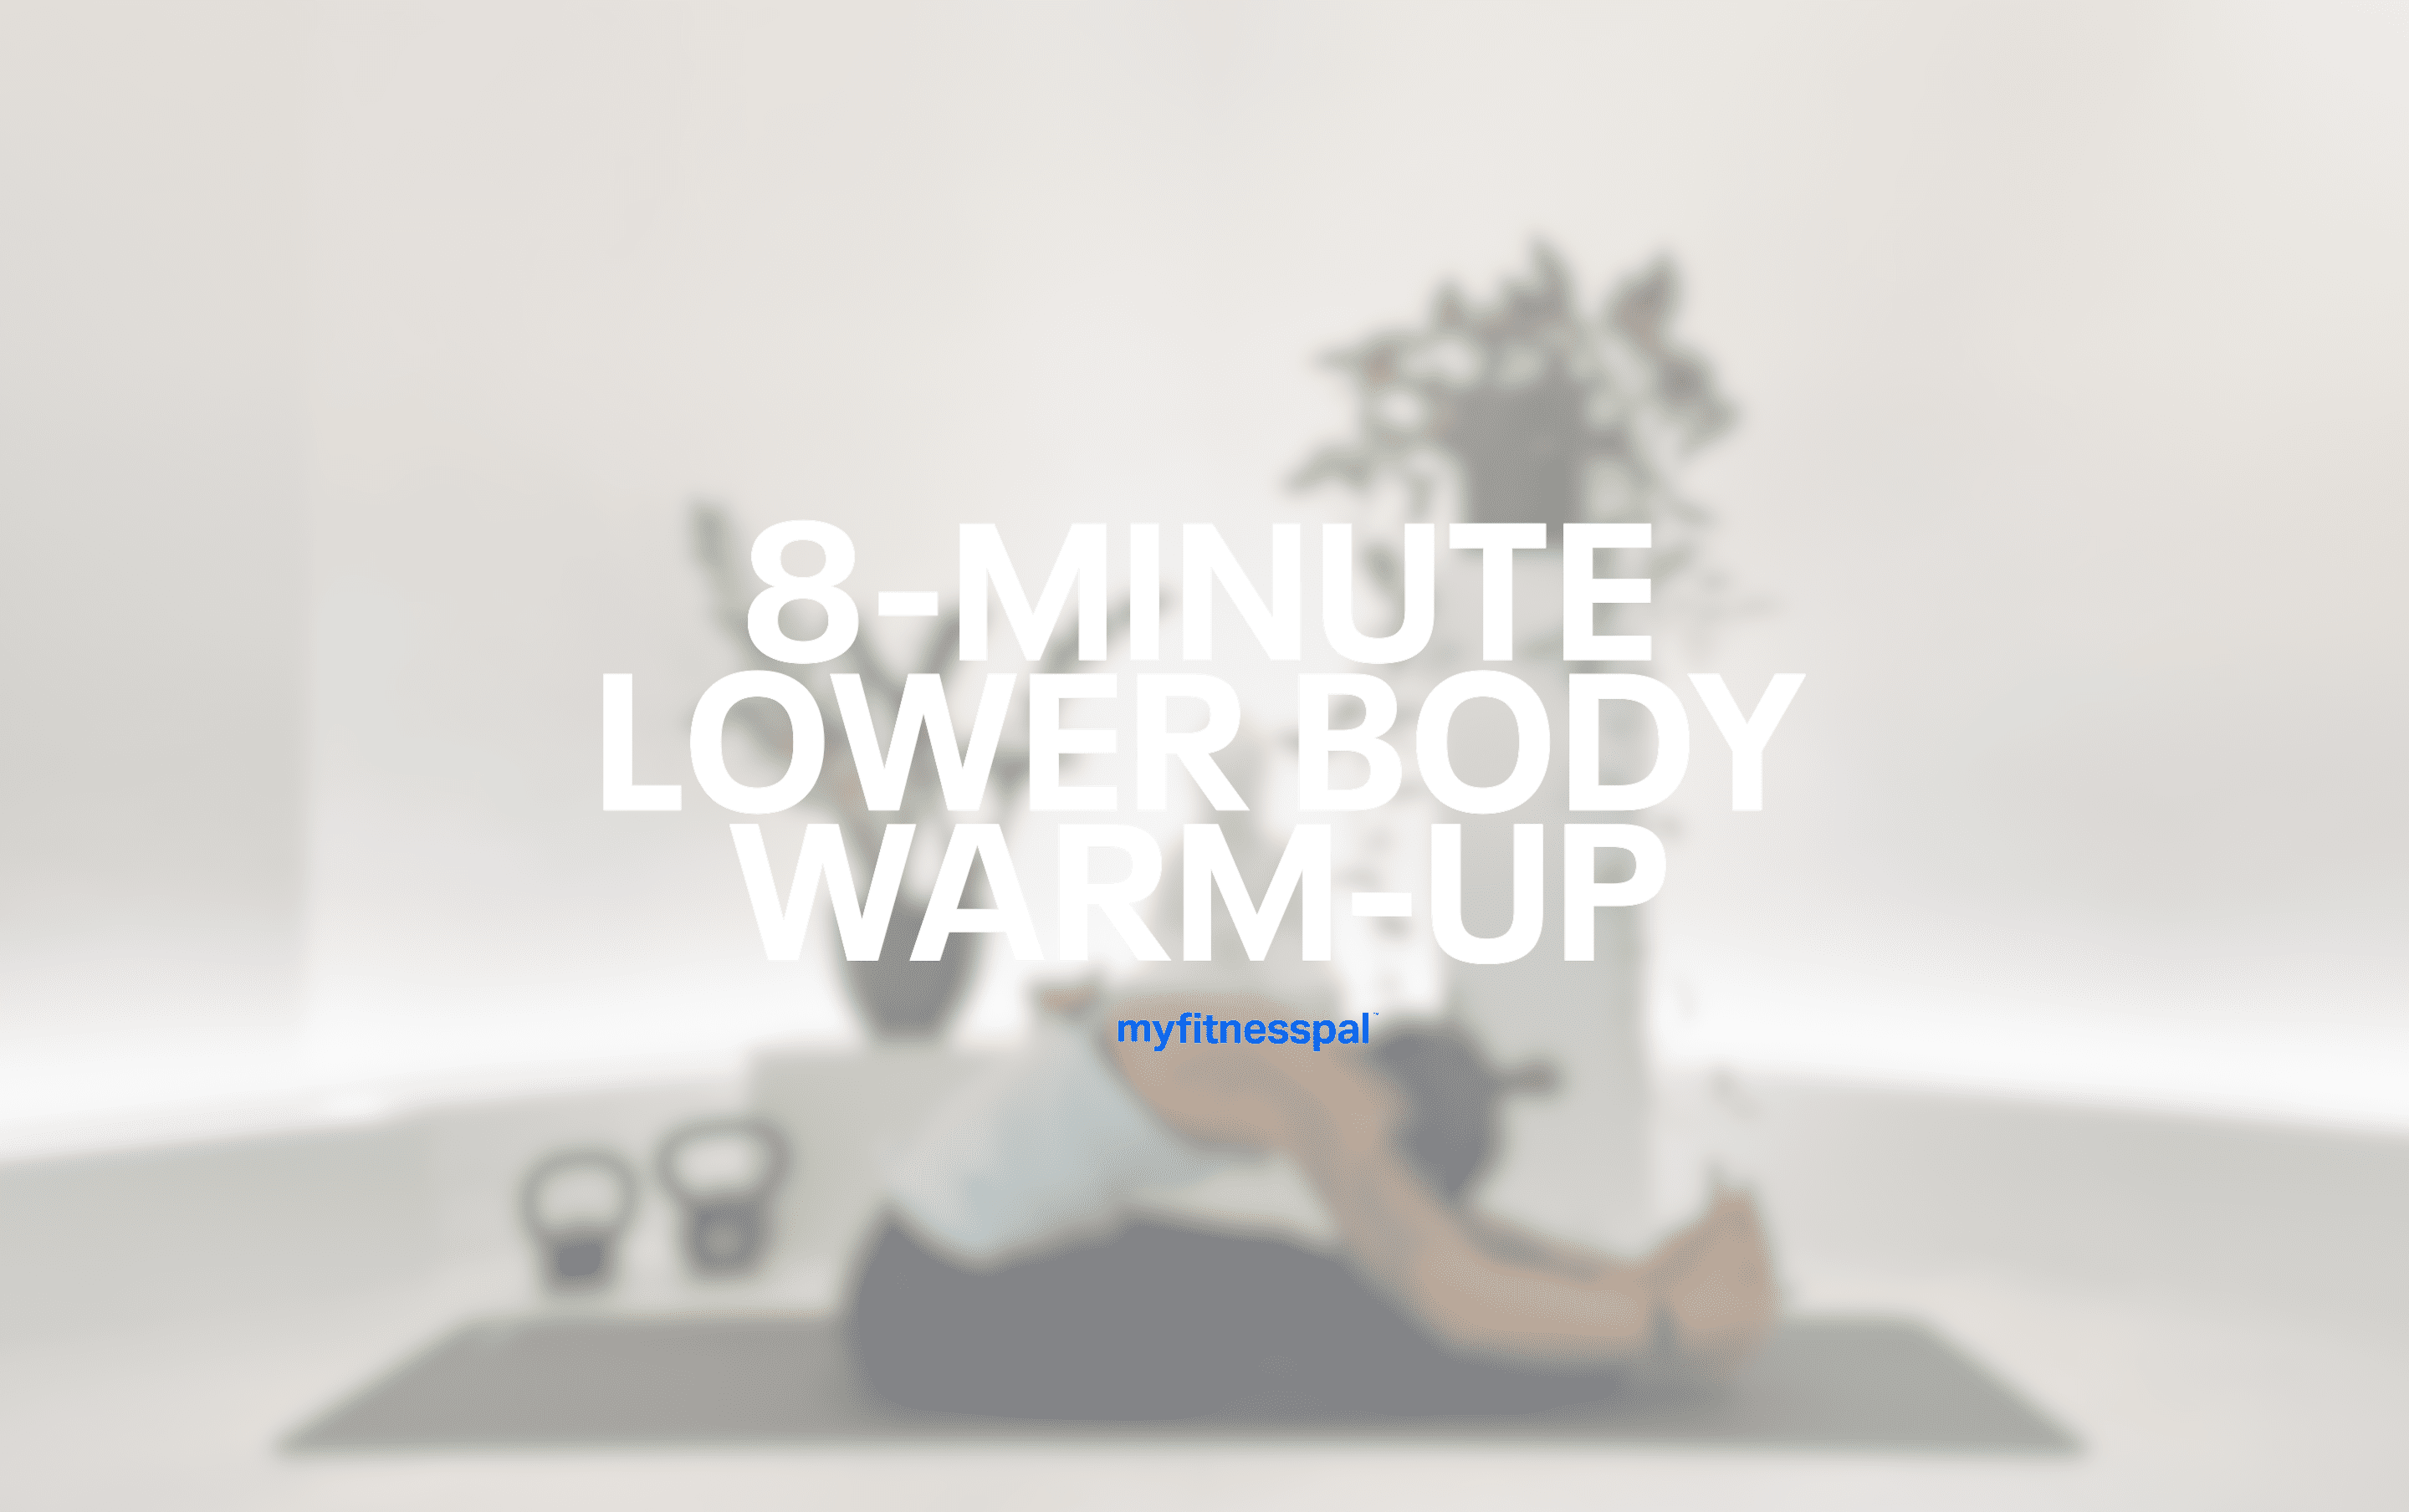 8-Minute Lower Body Warm-Up